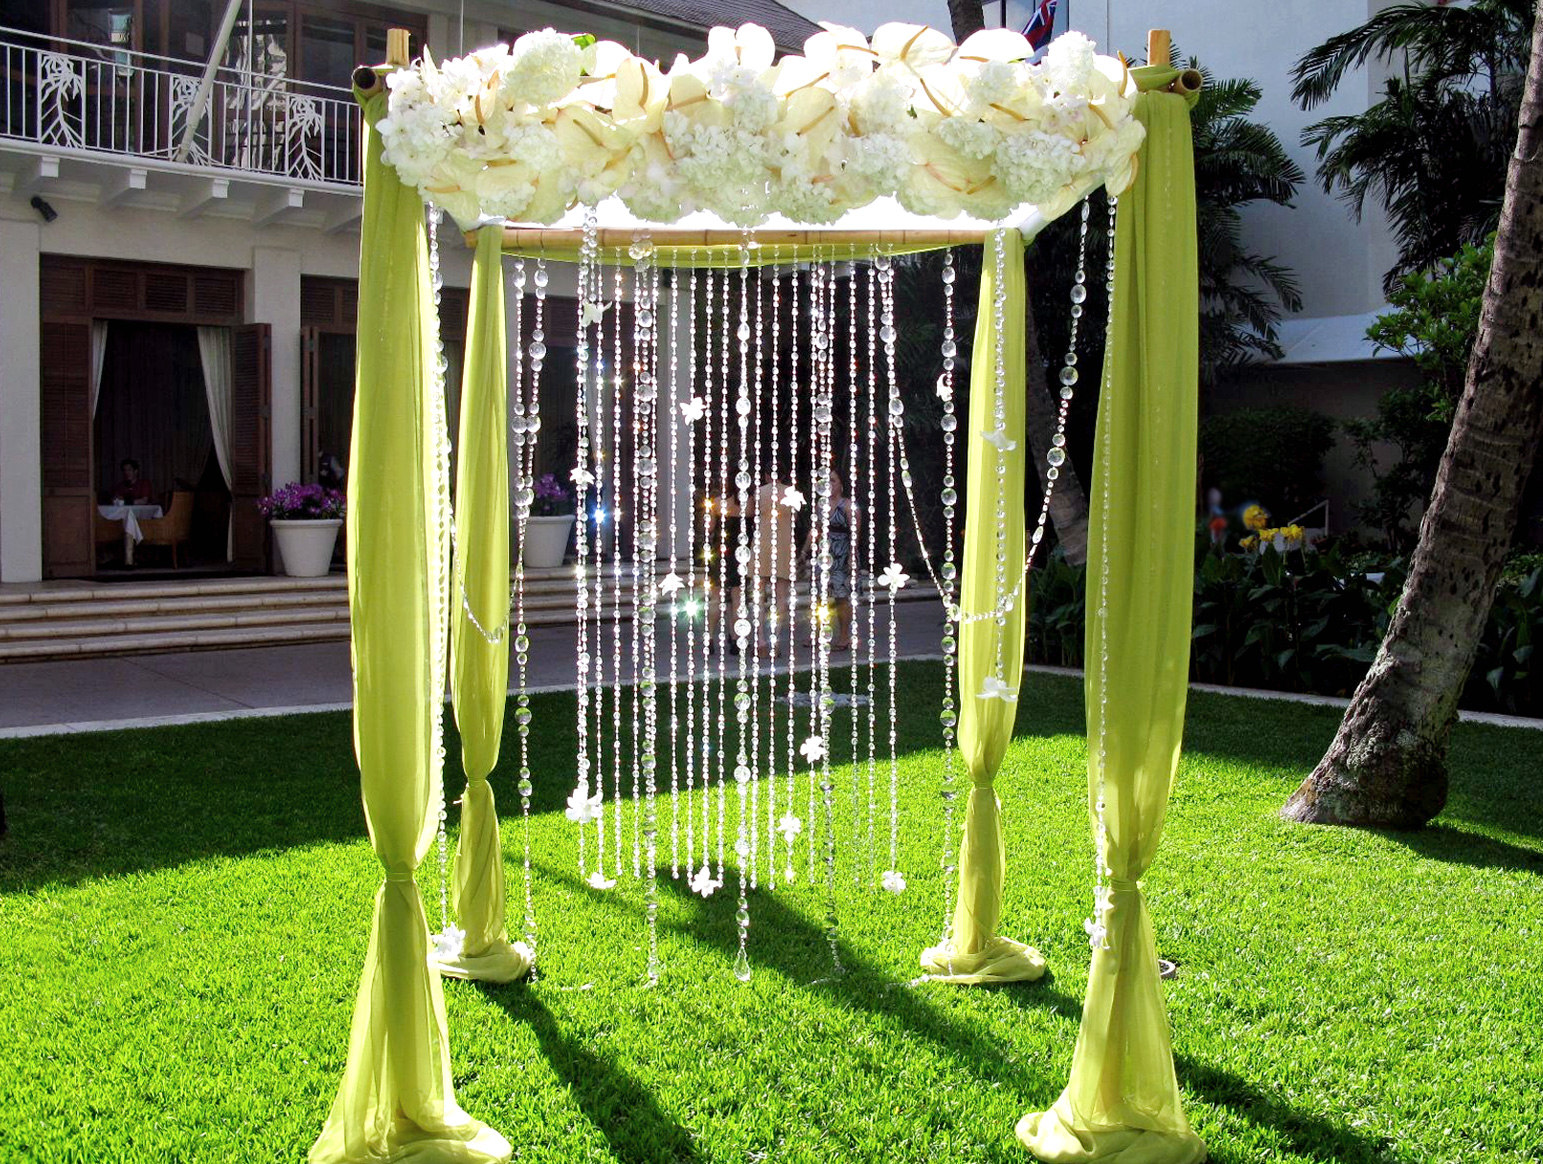 Decorating Ideas for Backyard Wedding Reception